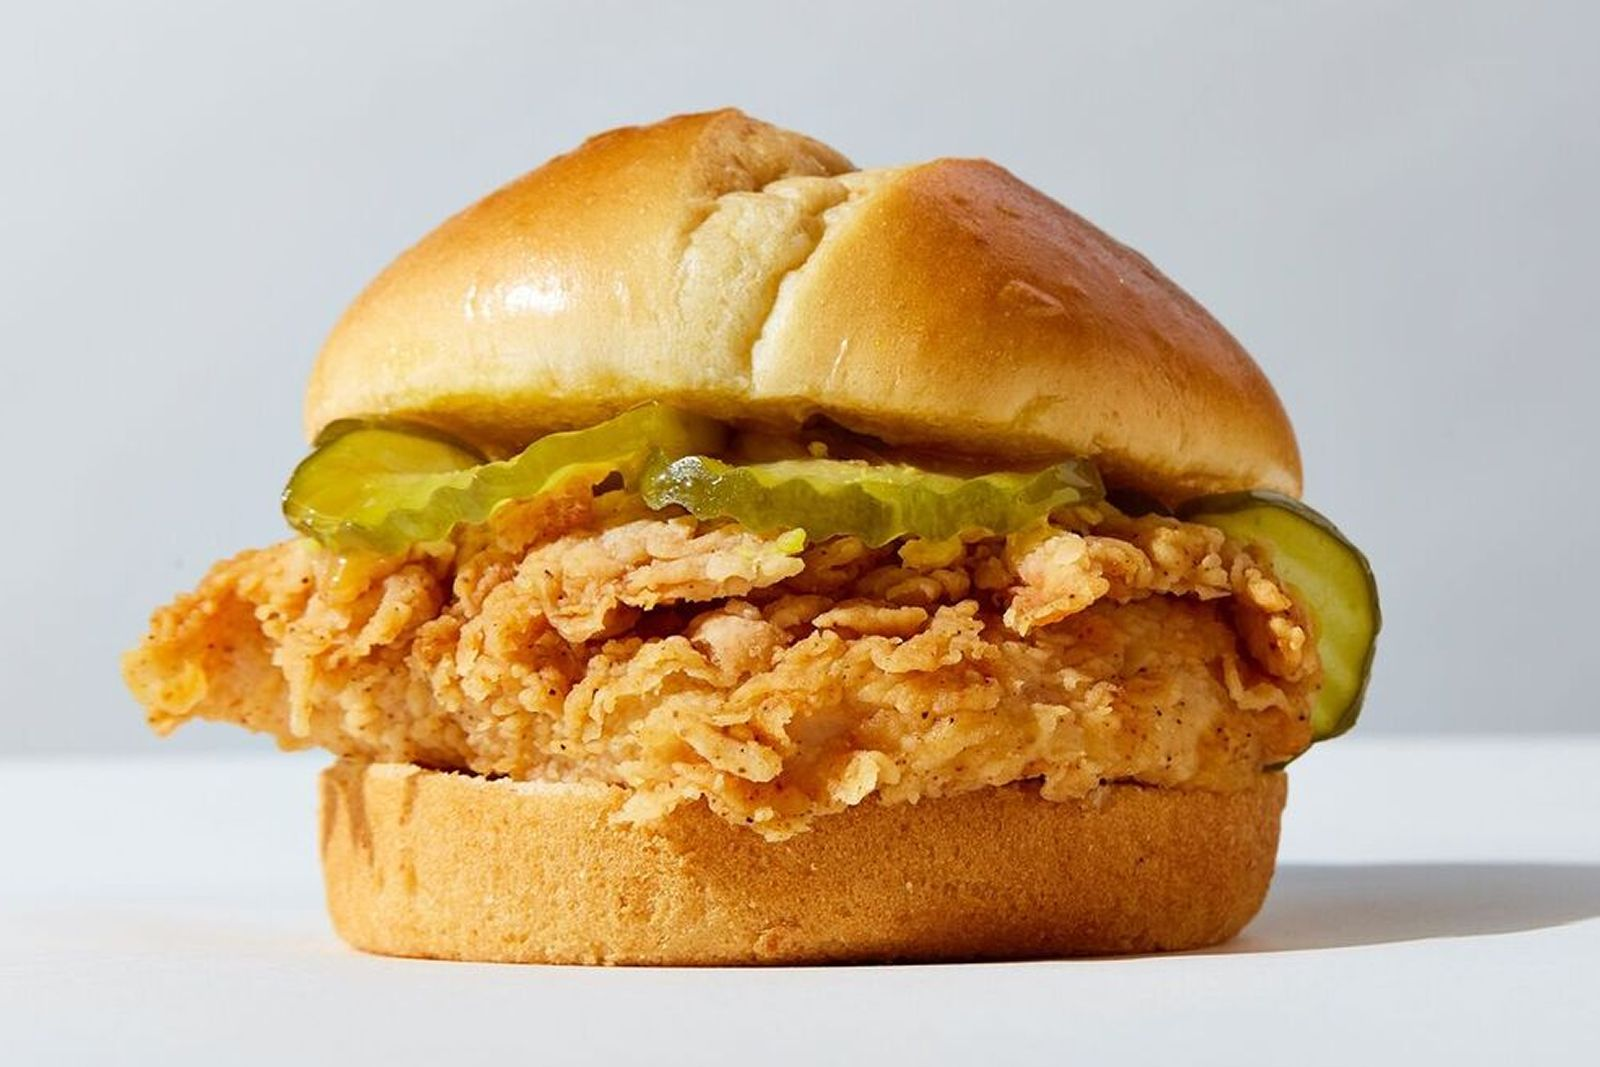 Chester's Launches a New Fried Chicken Sandwich at Love's Travel Stops